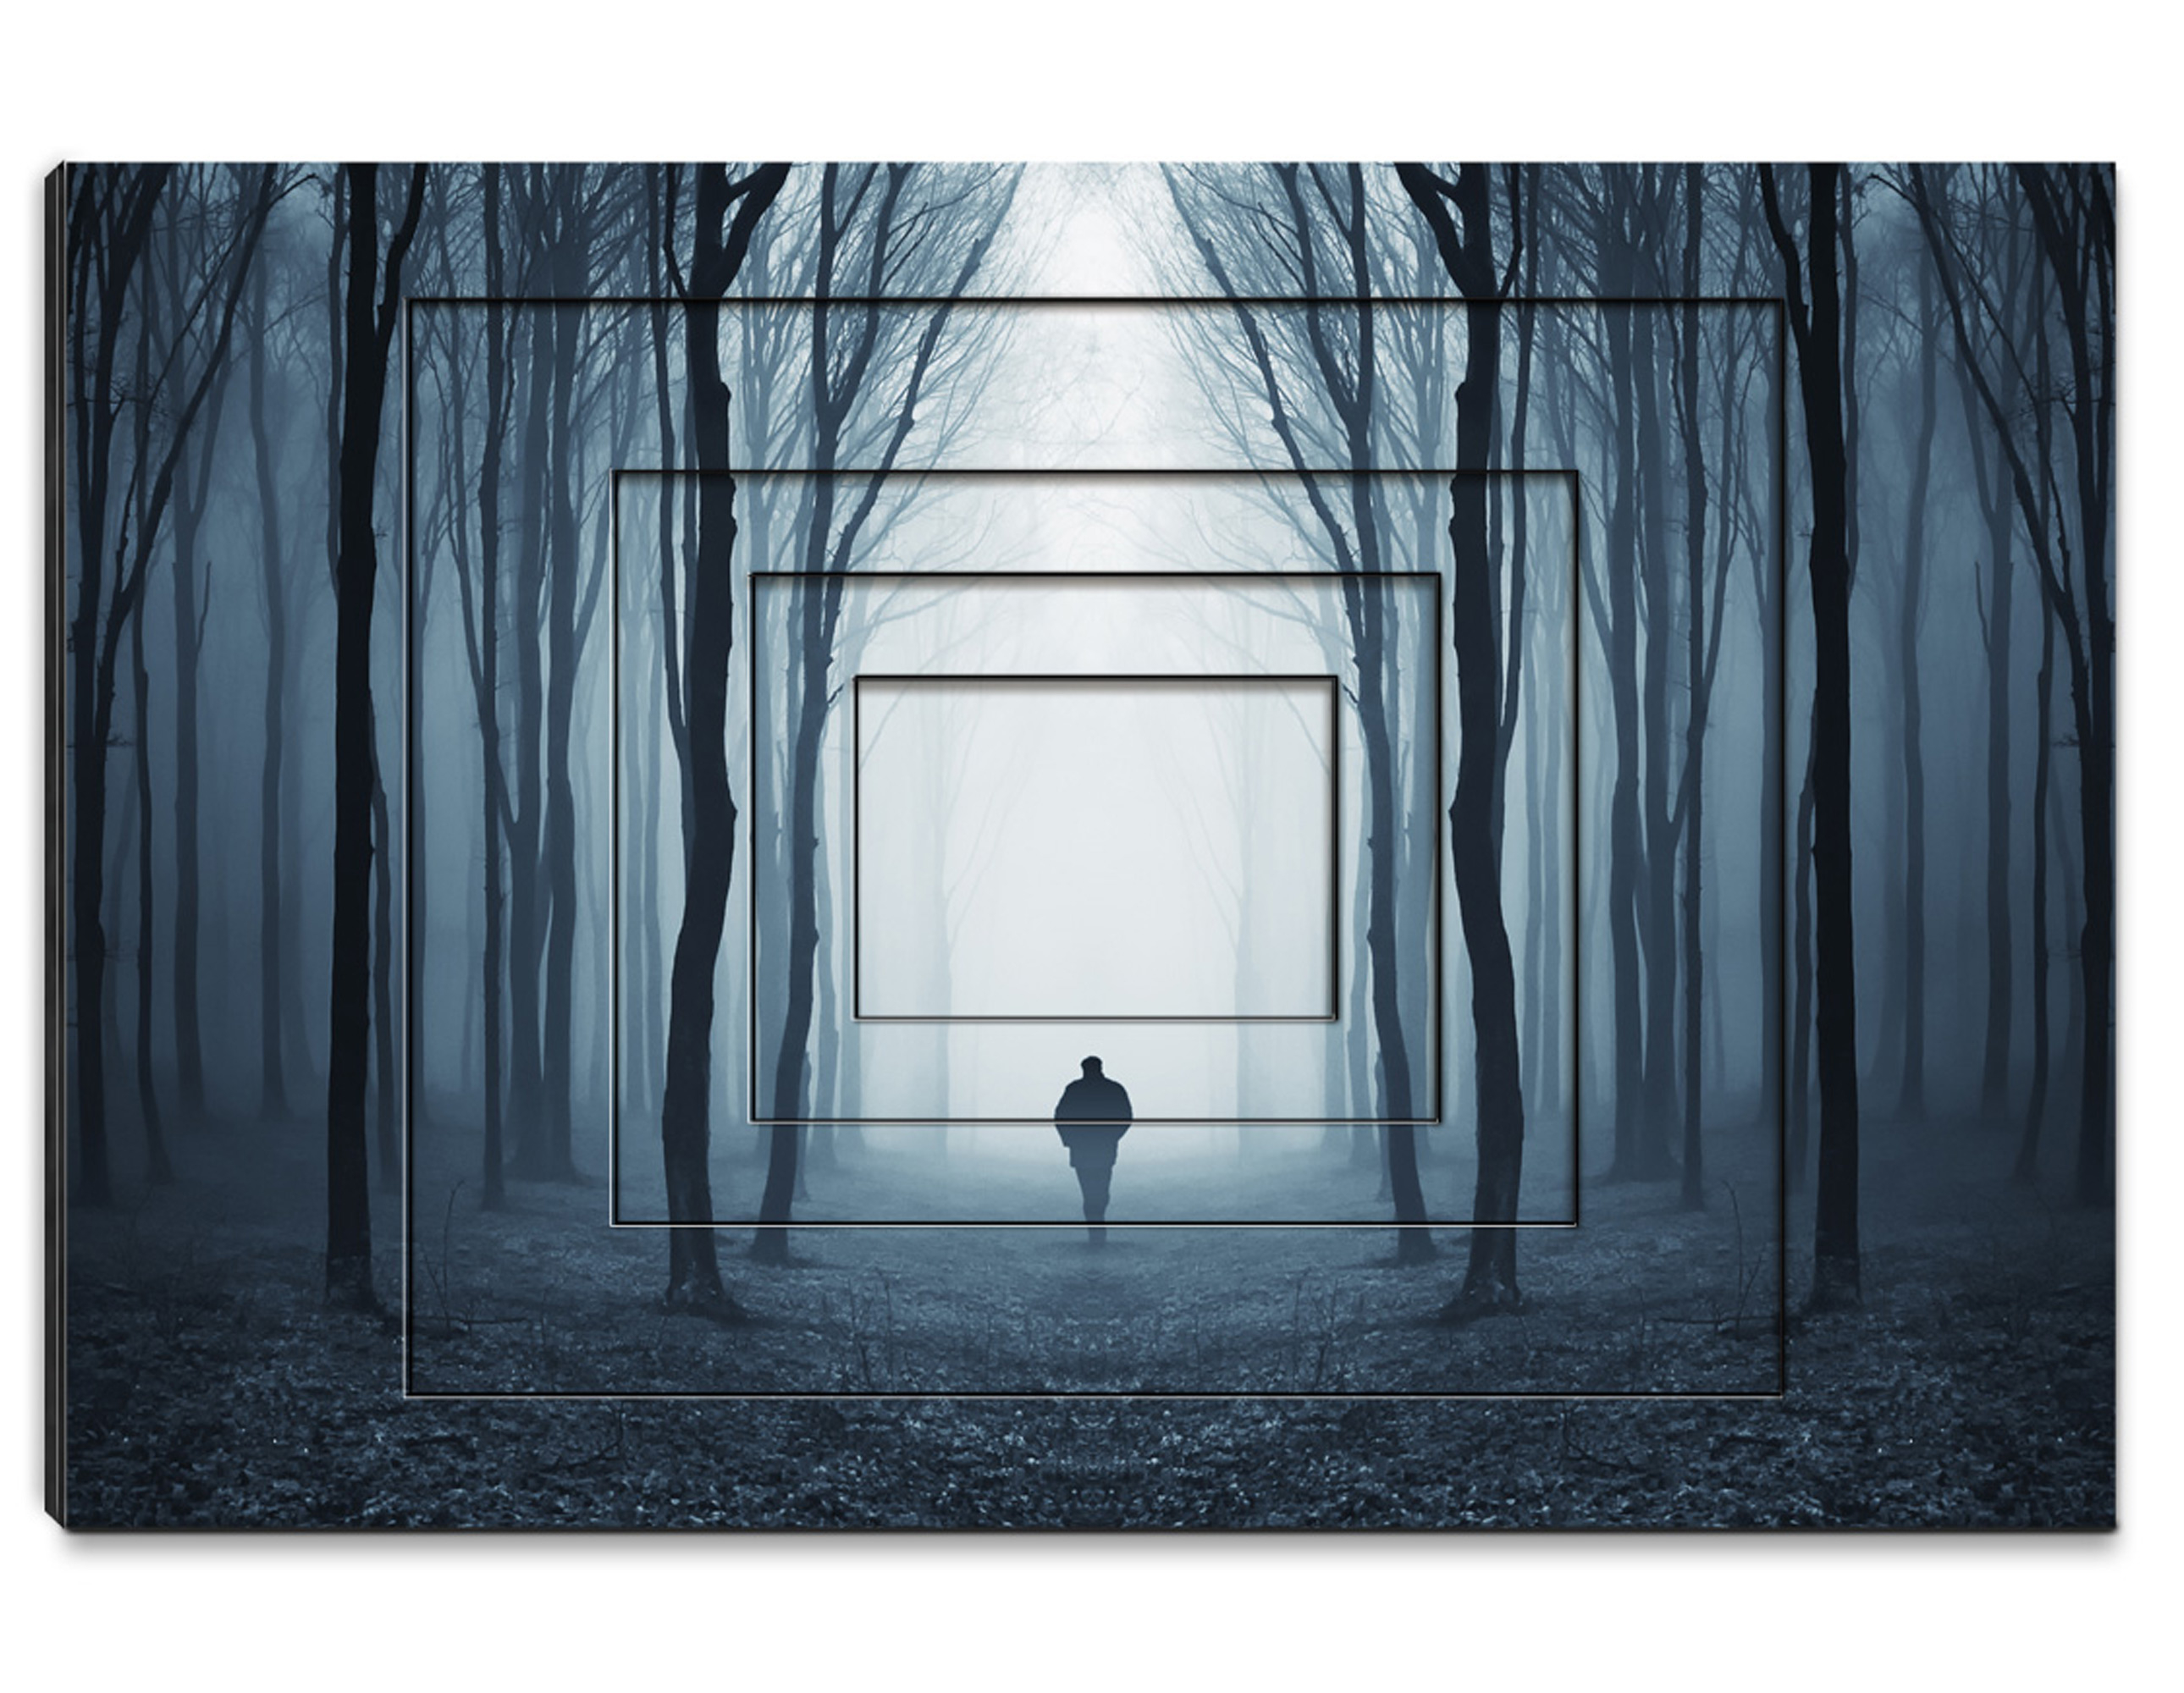 "The Woods - Forest Walk, Wanderer, Black and White 23.8"" x 15.8\"" Print on Wood"